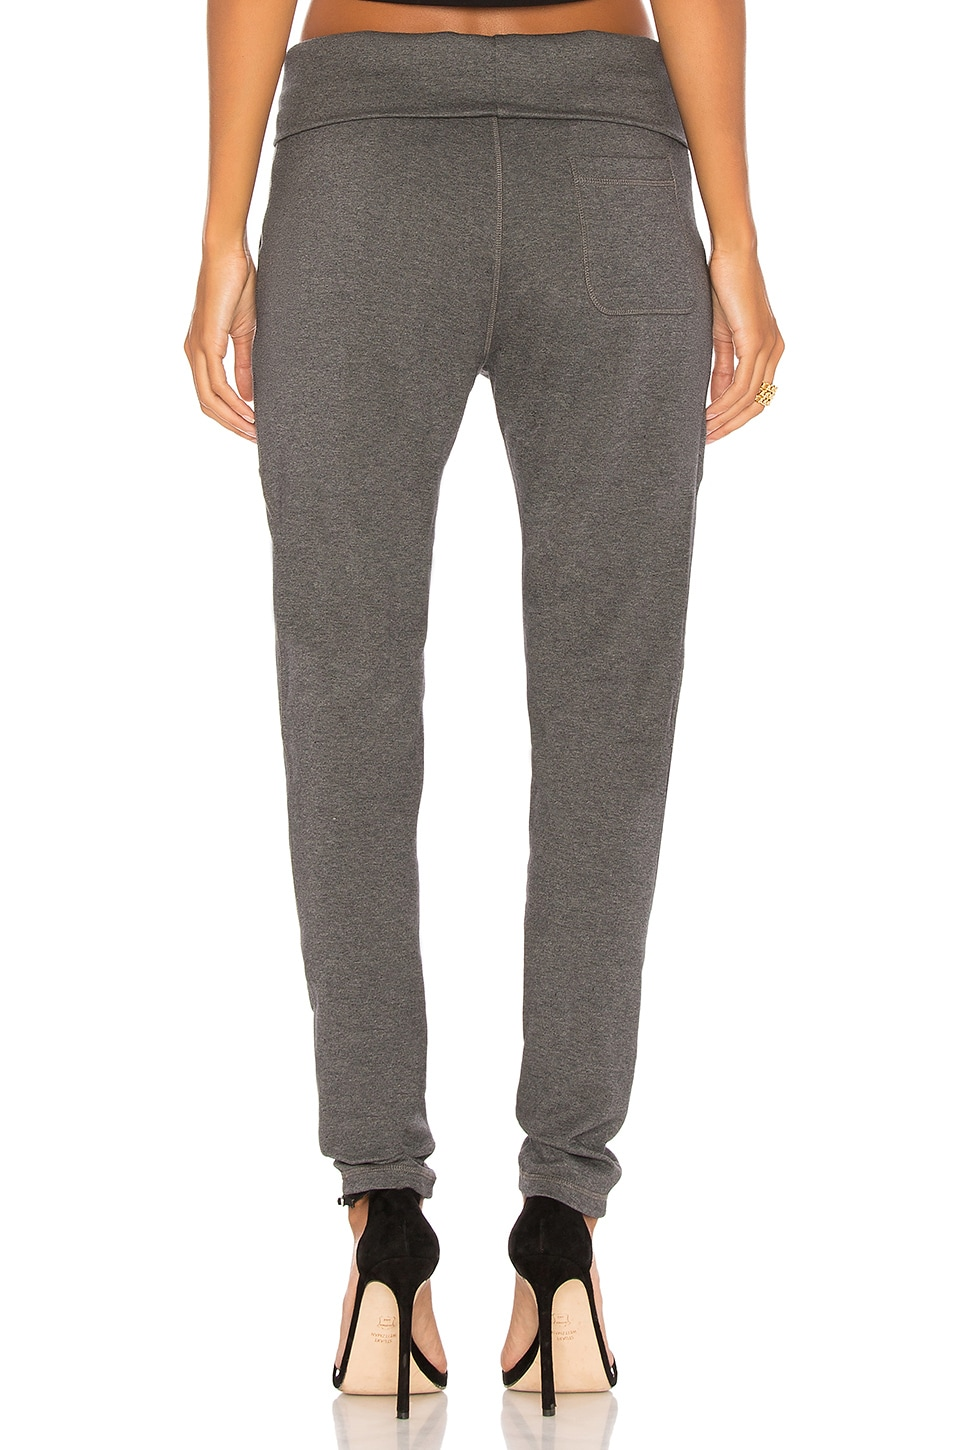 Luxe Lounge Jogger, view 3, click to view large image.